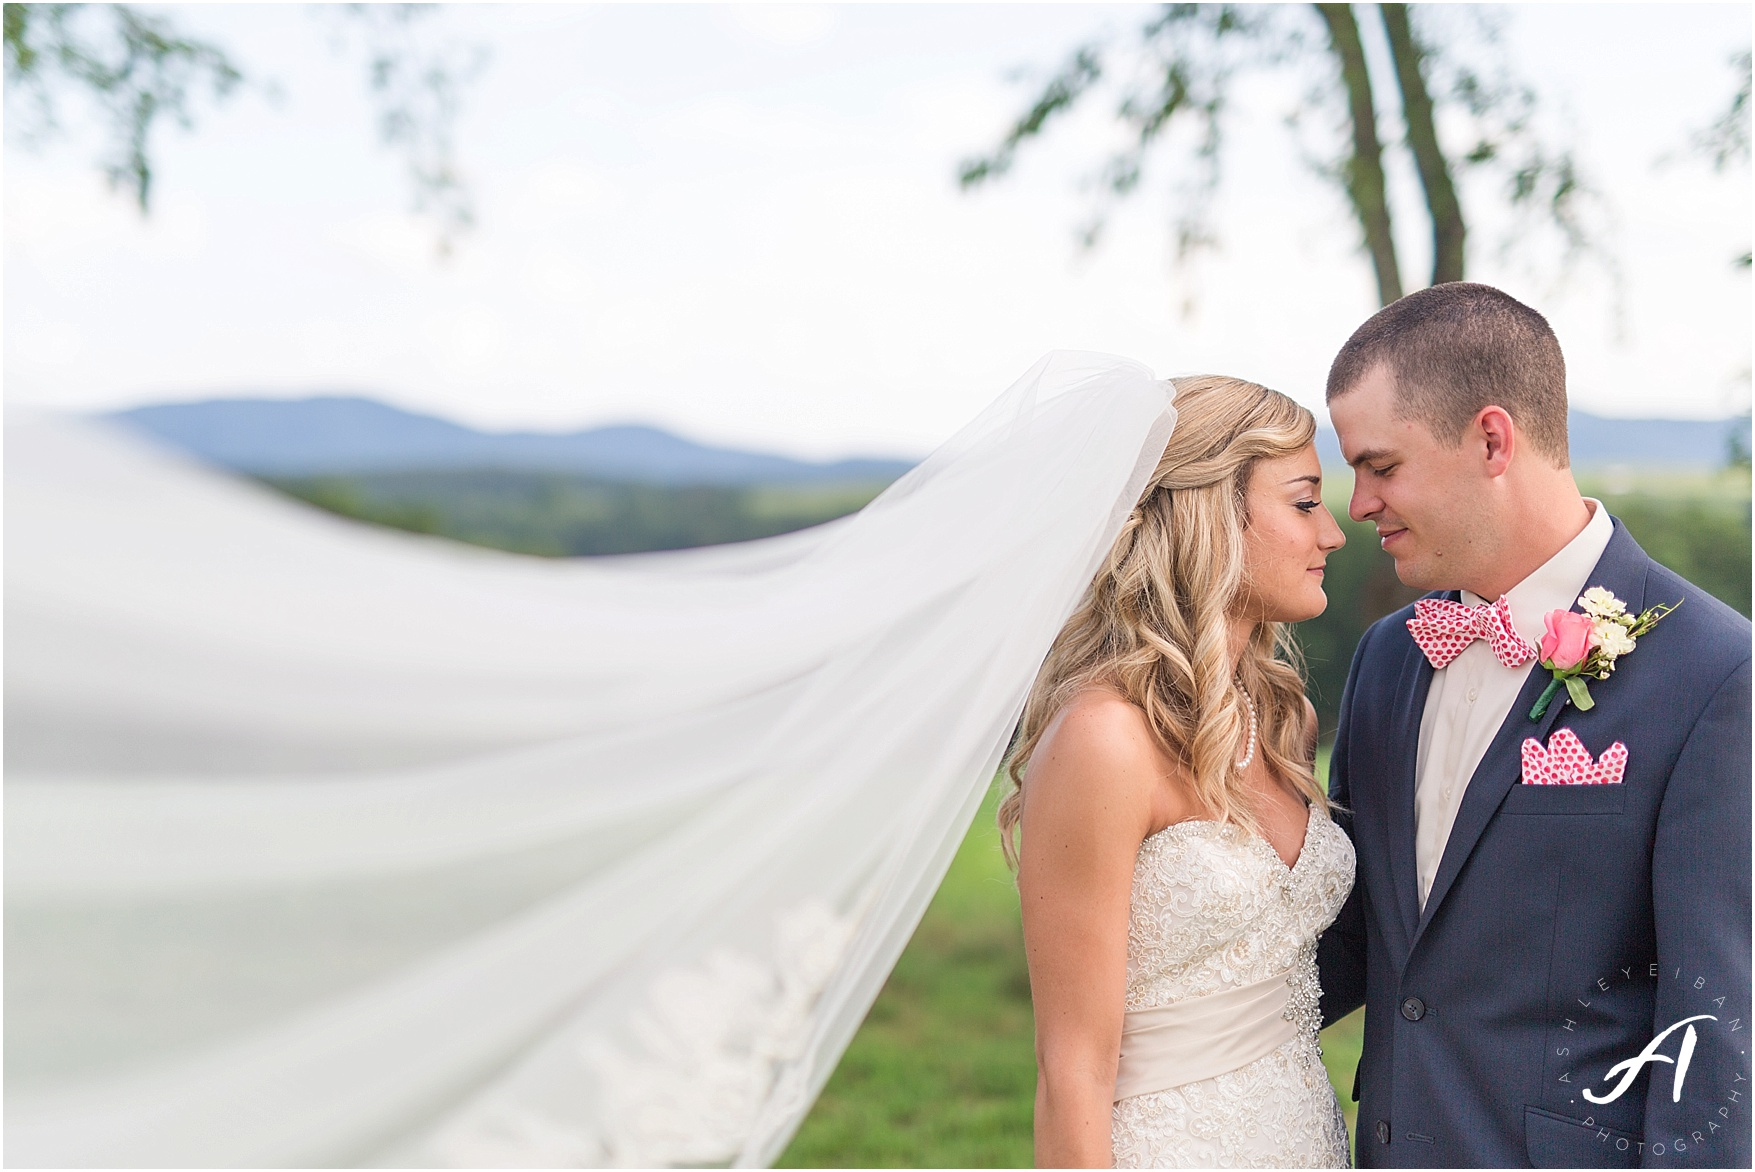 navy and coral mountain view Wedding at The Glen at The Boxtree Lodge || Braeloch Wedding in Vinton, Virginia || Ashley Eiban Photography || www.ashleyeiban.com